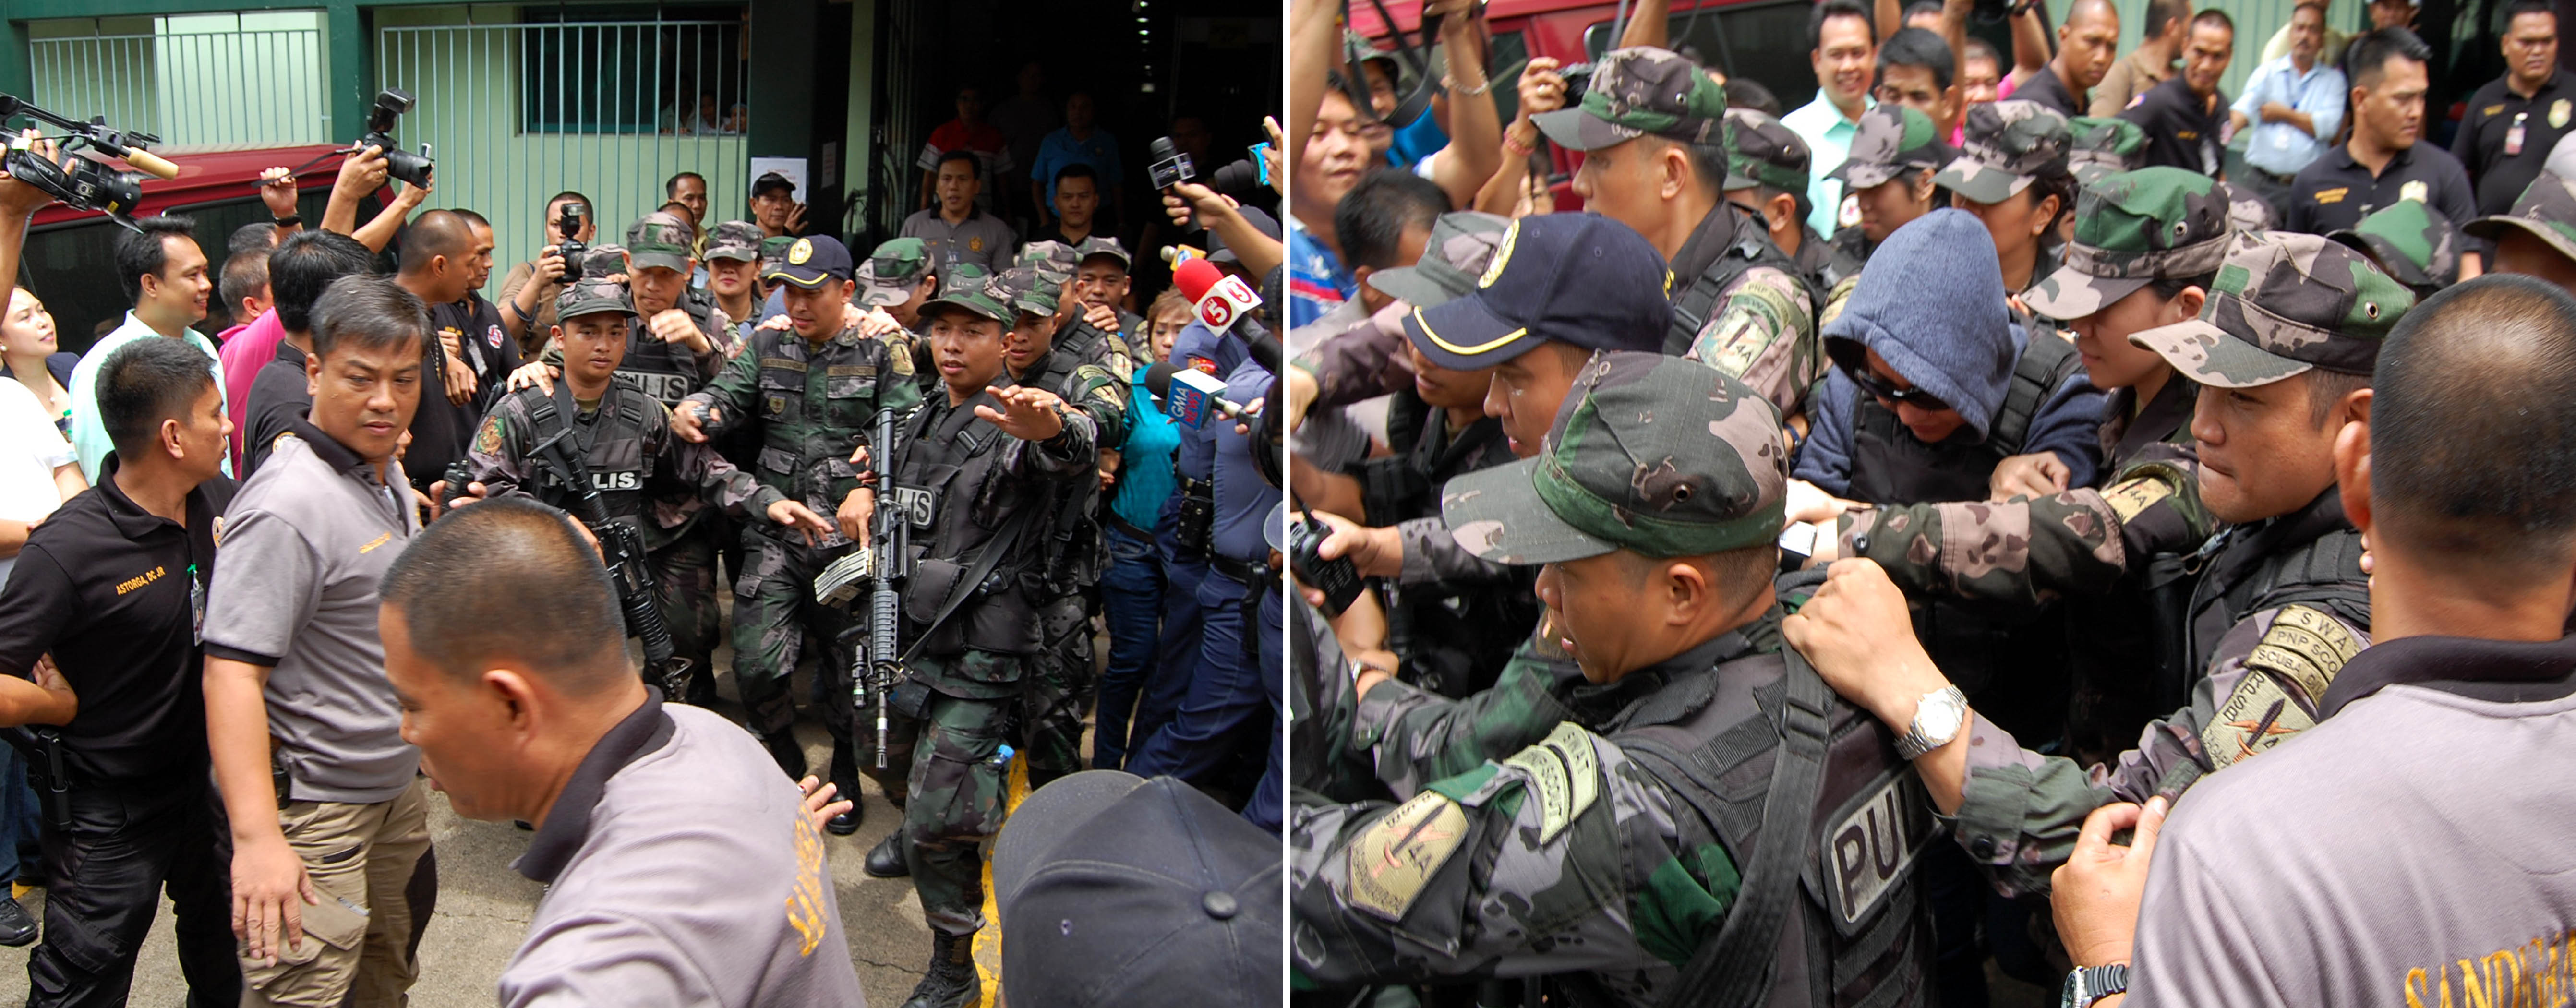 Alleged pork barrel scam mastermind Janet Lim-Napoles (center in right photo) is escorted by Philippine National Police (PNP) personnel out of the courtroom after her arraignment for plunder charges on Thursday (June 26, 2014) at the Sandiganbayan in Quezon City. (PNA photos by Gil S. Calinga)